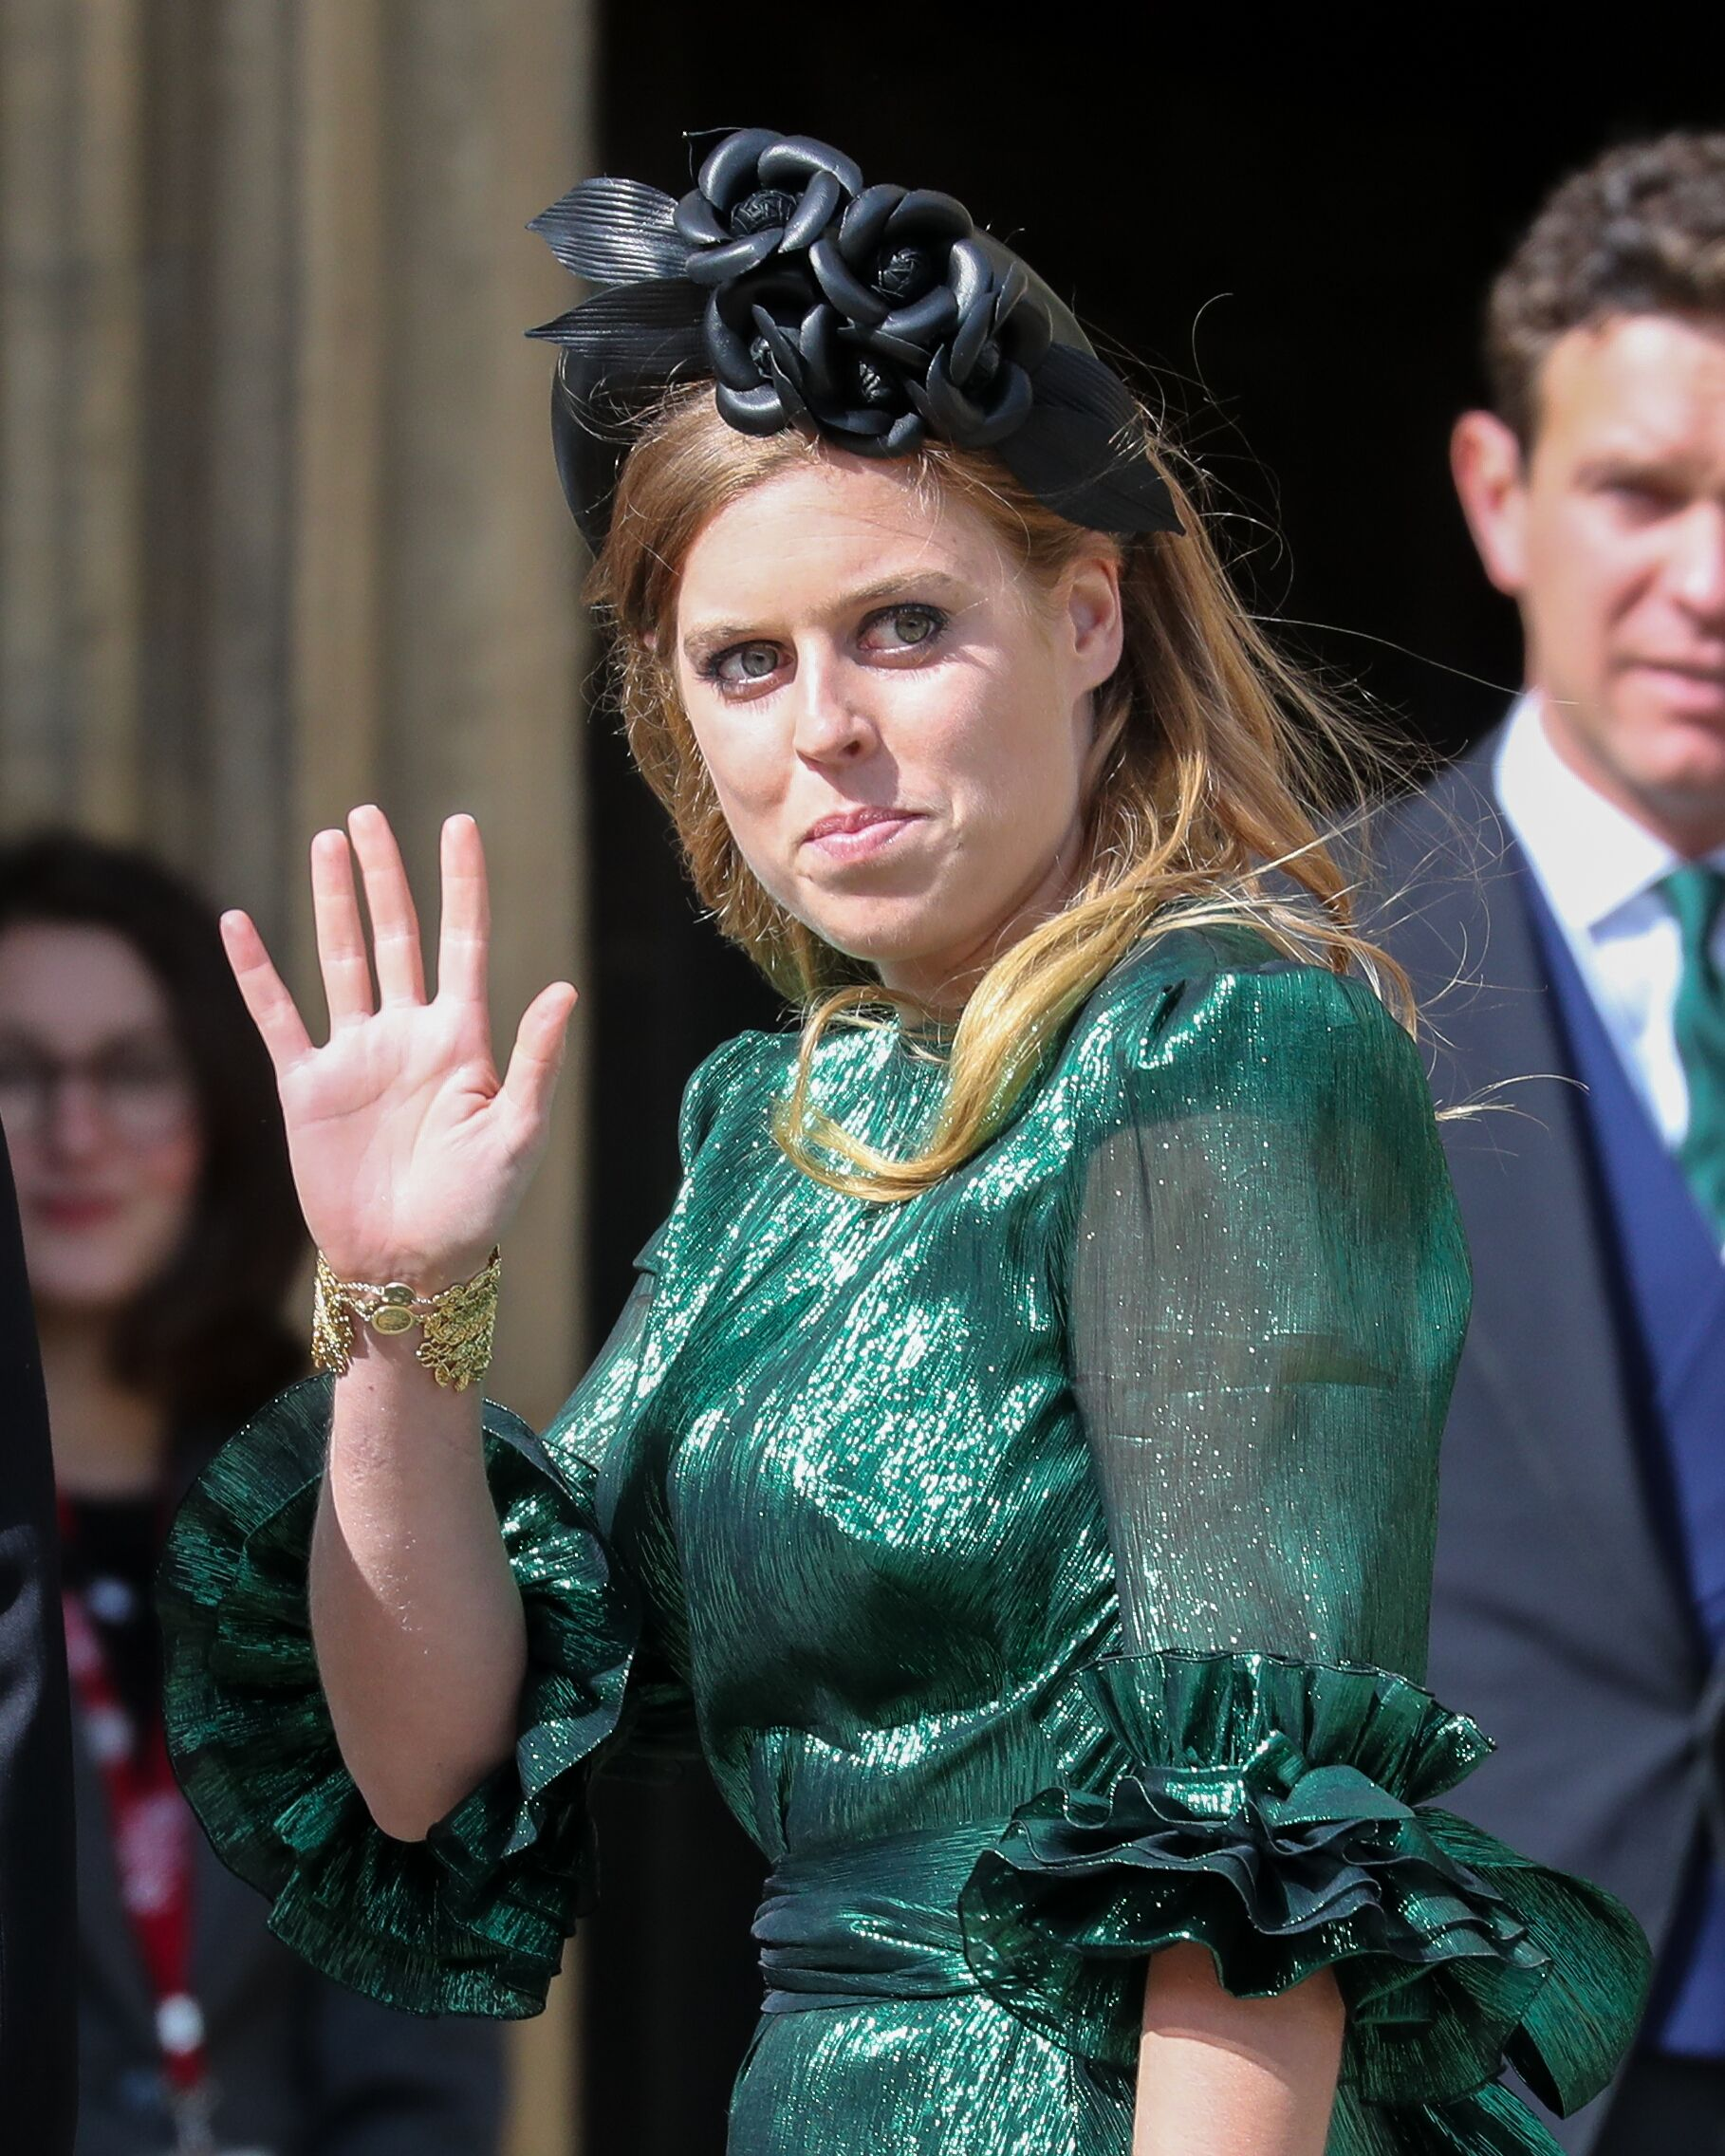 Princess Beatrice of York seen at the wedding of Ellie Goulding and Caspar Jopling at York Minster Cathedral on August 31, 2019 in York, England | Photo: Getty Images